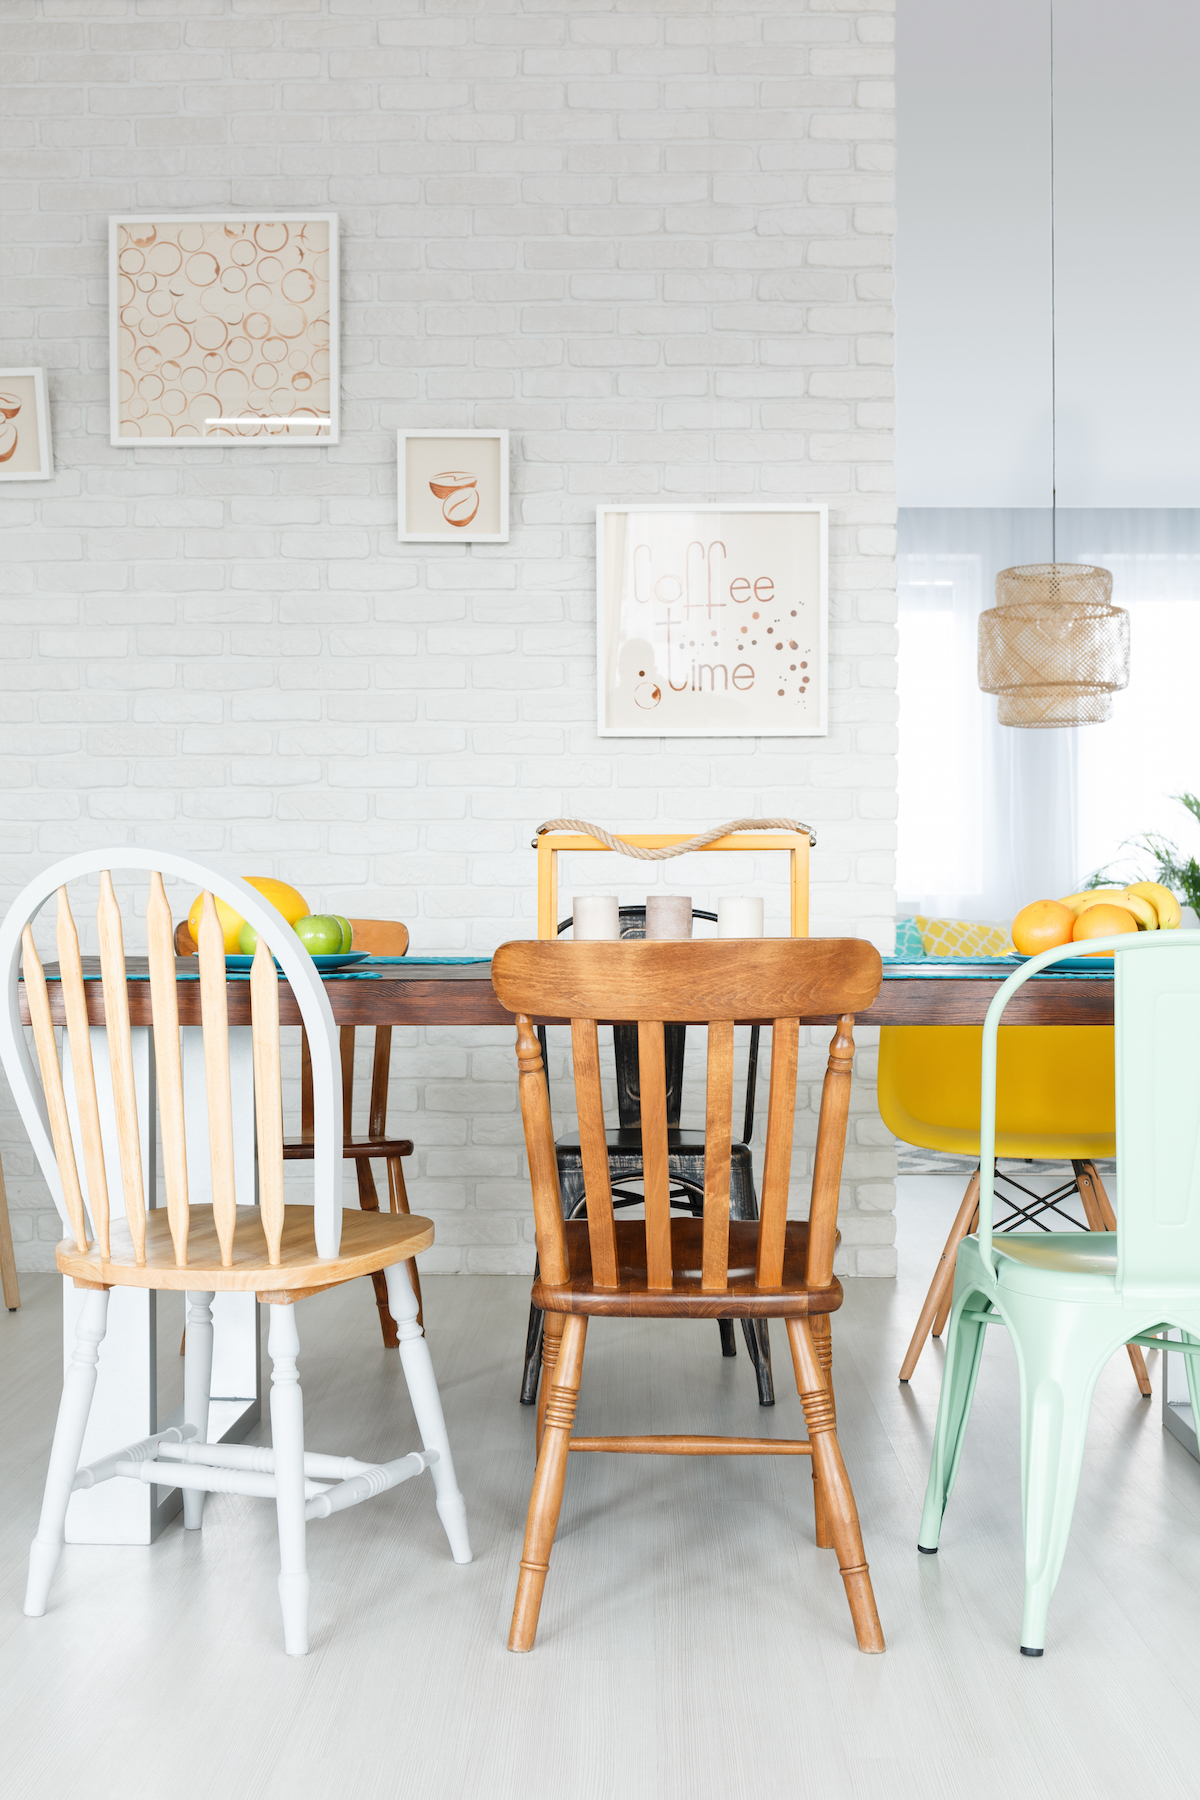 Dining,Space,With,Upcycled,Wooden,Chairs,And,Table,In,Stylish